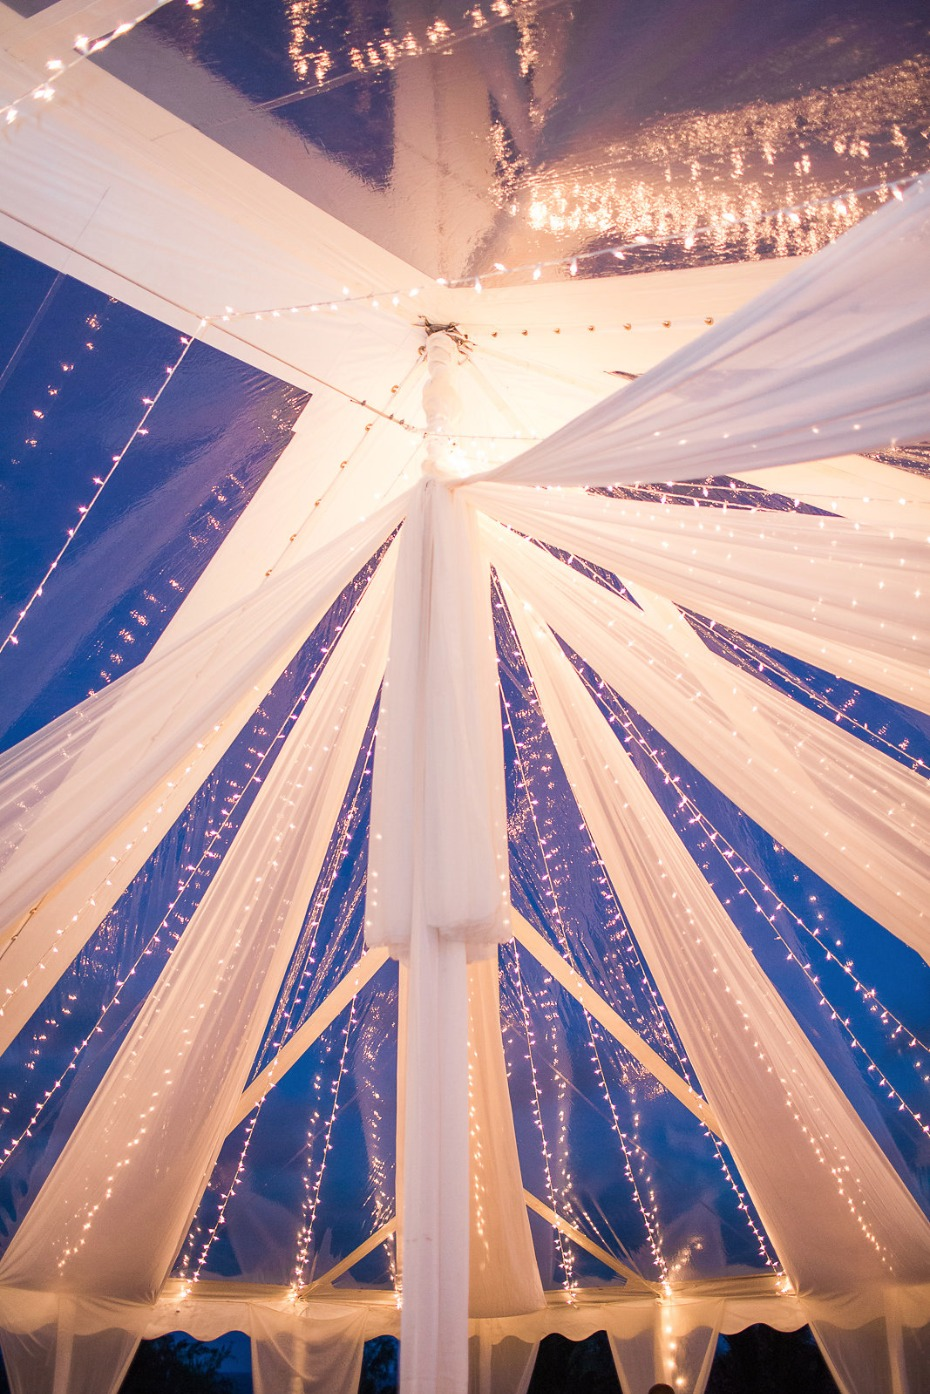 Lighting and drapery ideas for a tent wedding